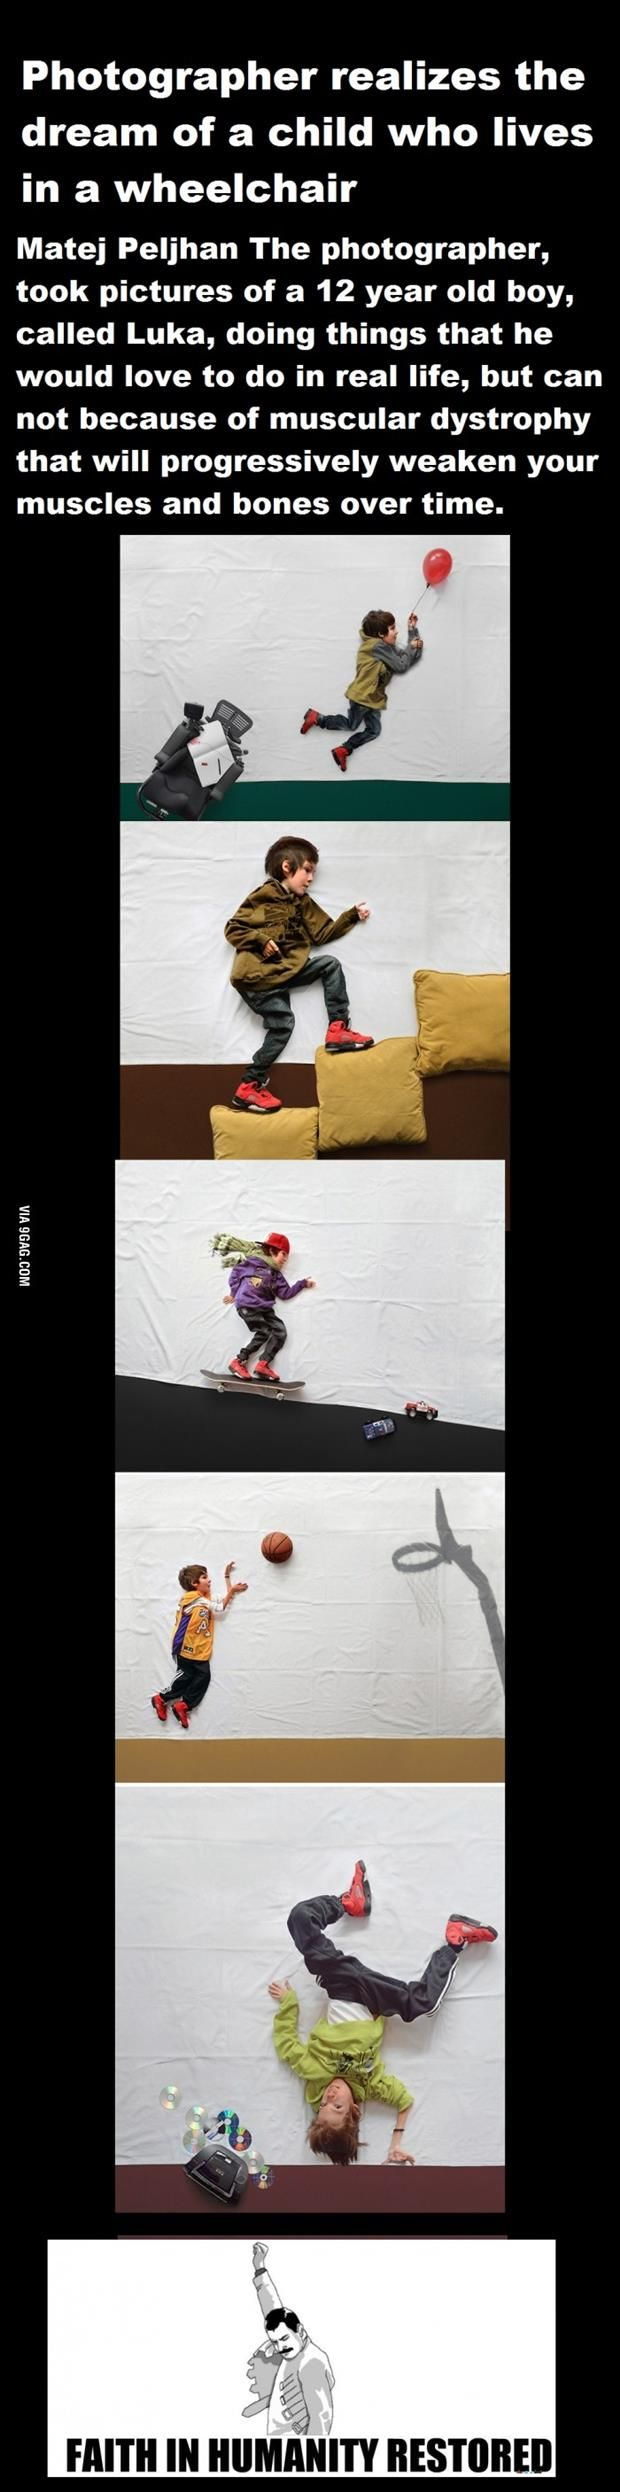 Photographer Realizes the Dream of a Child Who Lives in a Wheelchair Faith In Humanity Restored